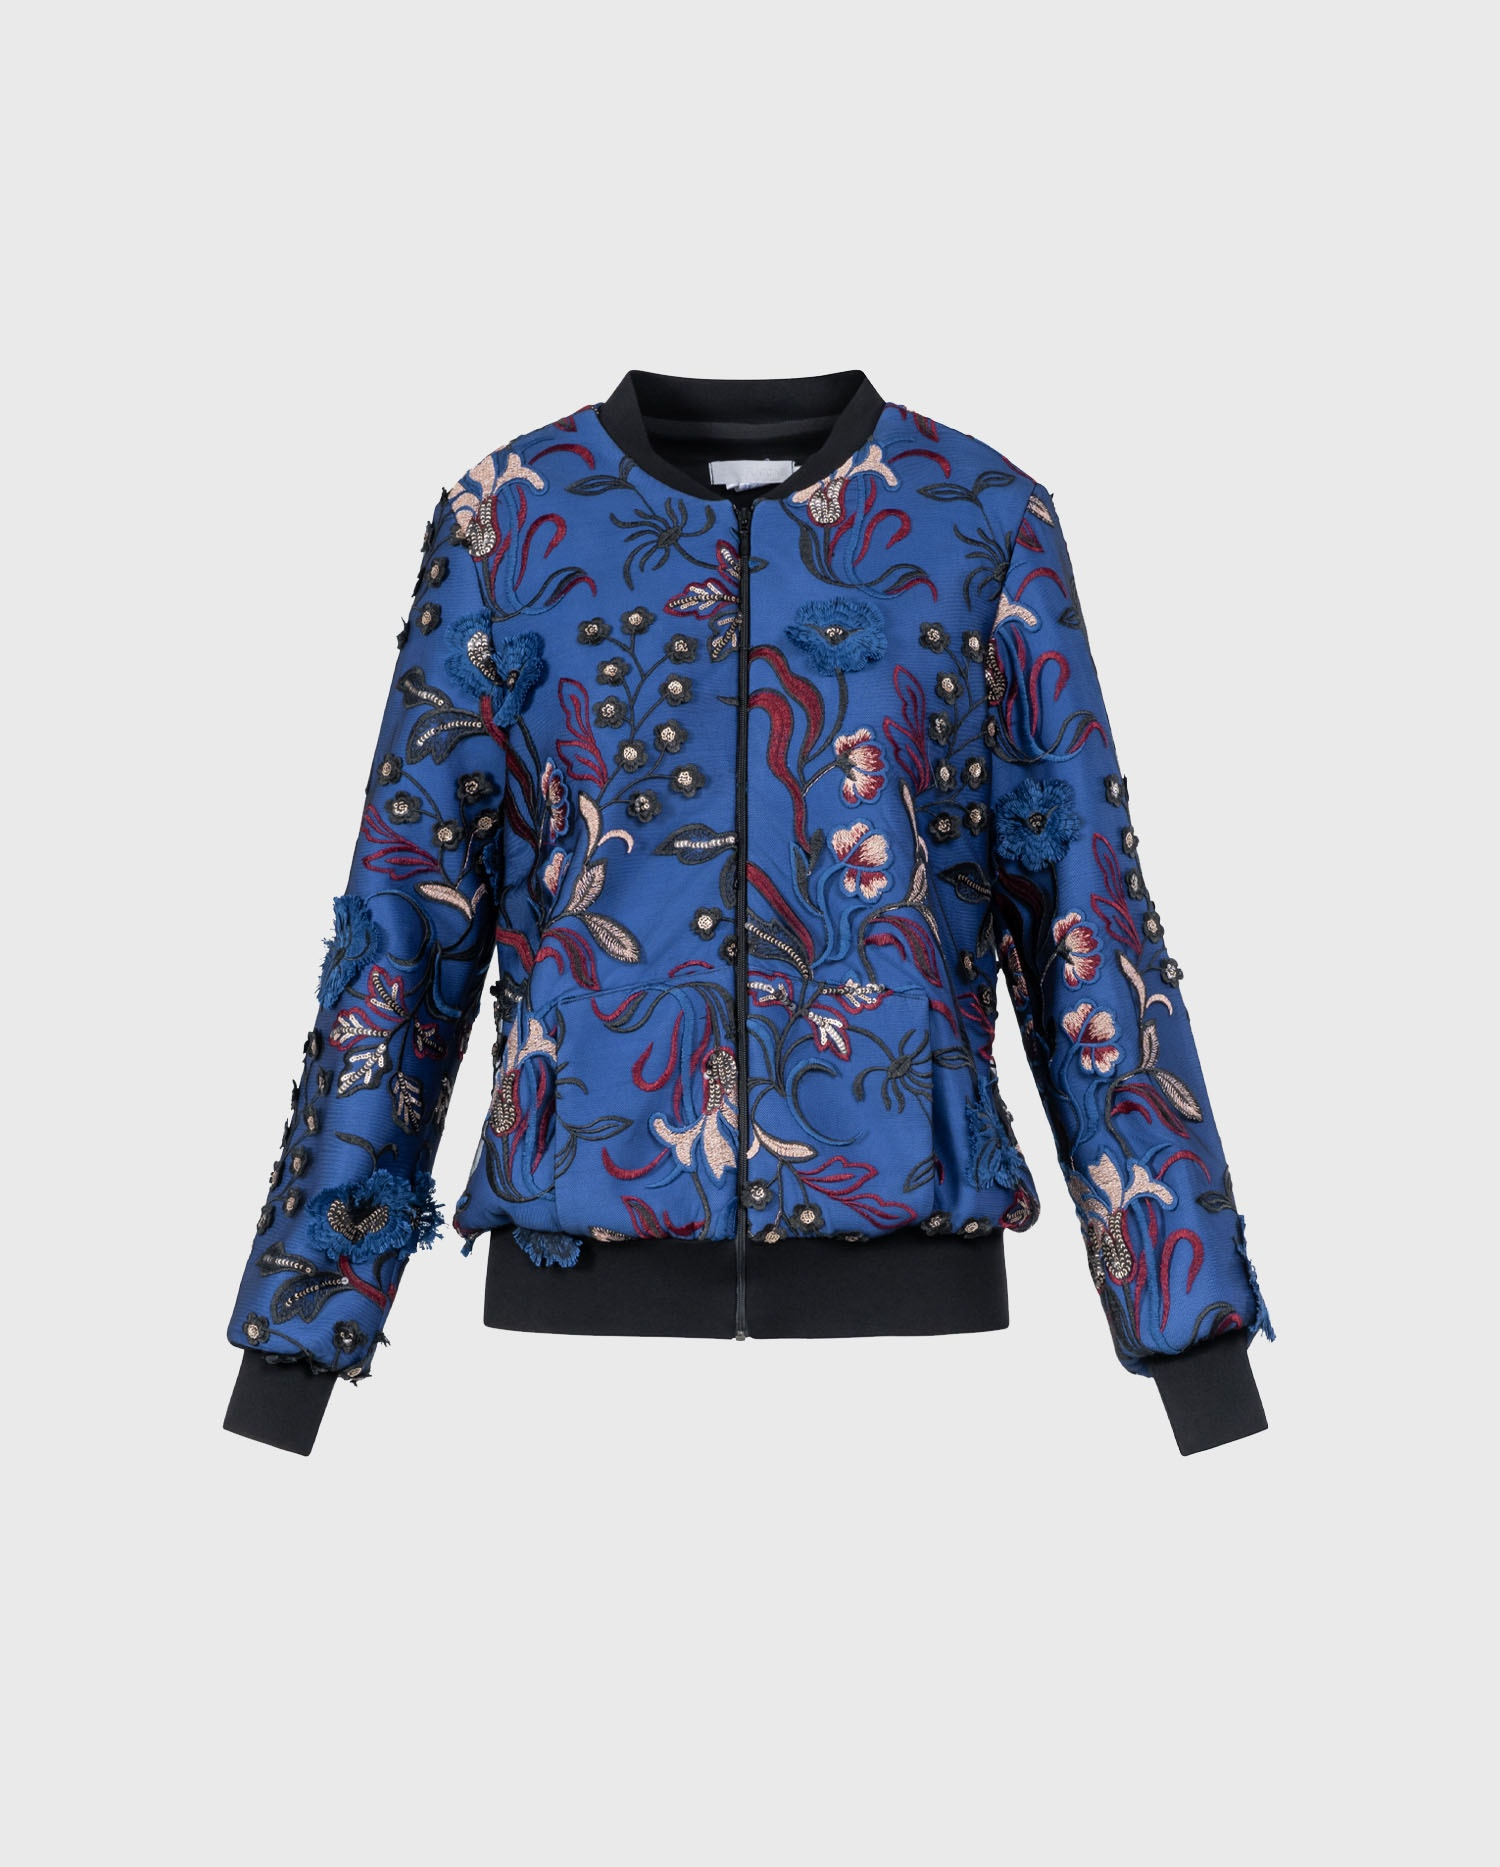 The RENALDINE bomber blue jacket will add take your casual look to the next level